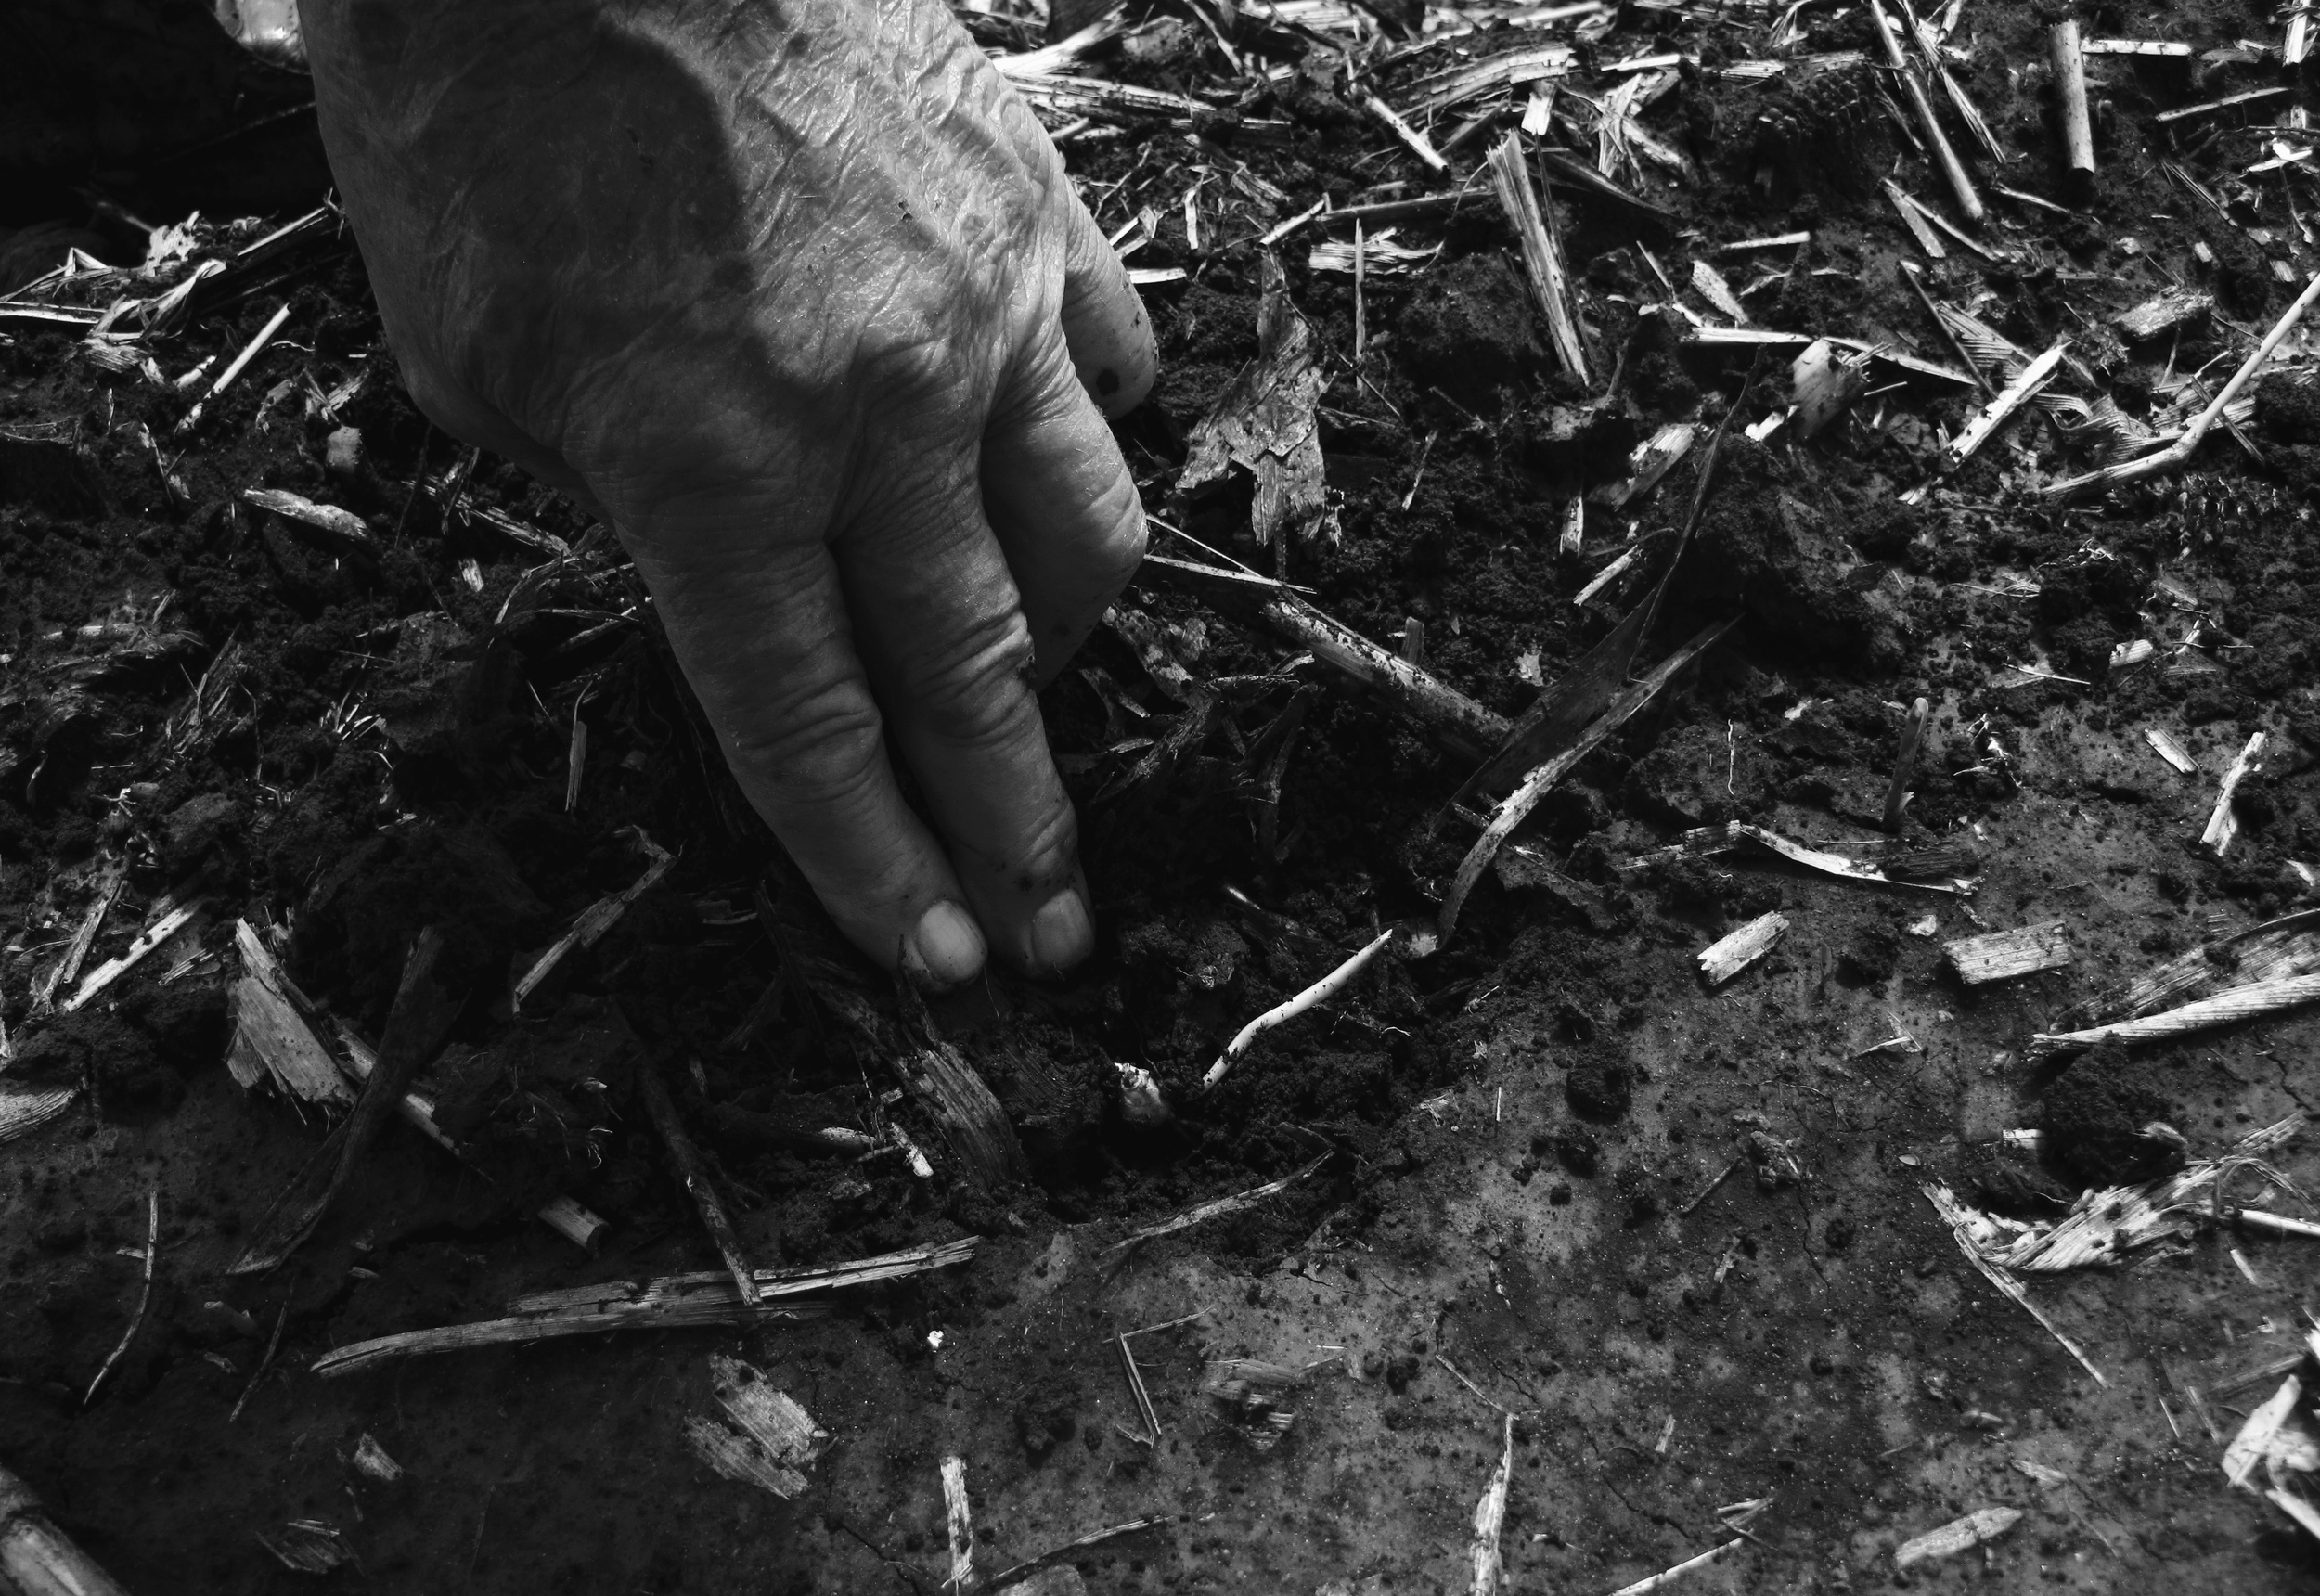 Uncle Herb checking for corn seedlings sprouting in the ground, Illinois.